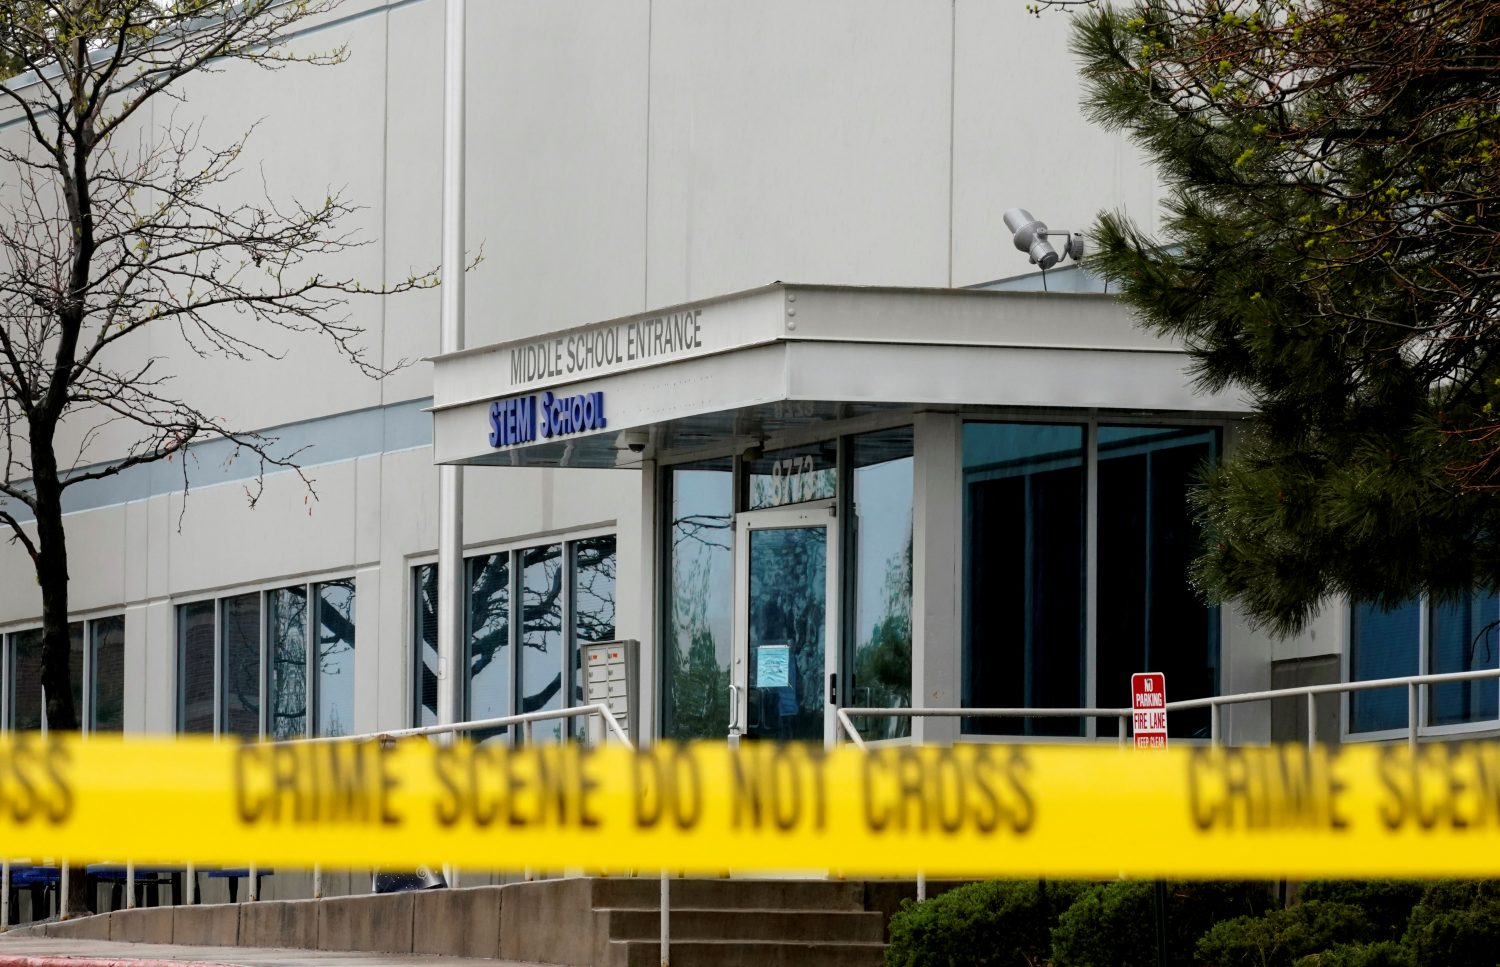 Crime scene tape is seen outside the school following the shooting at the Science, Technology, Engineering and Math (STEM) School in Highlands Ranch, Colorado, U.S., May 8, 2019. REUTERS/Rick Wilking